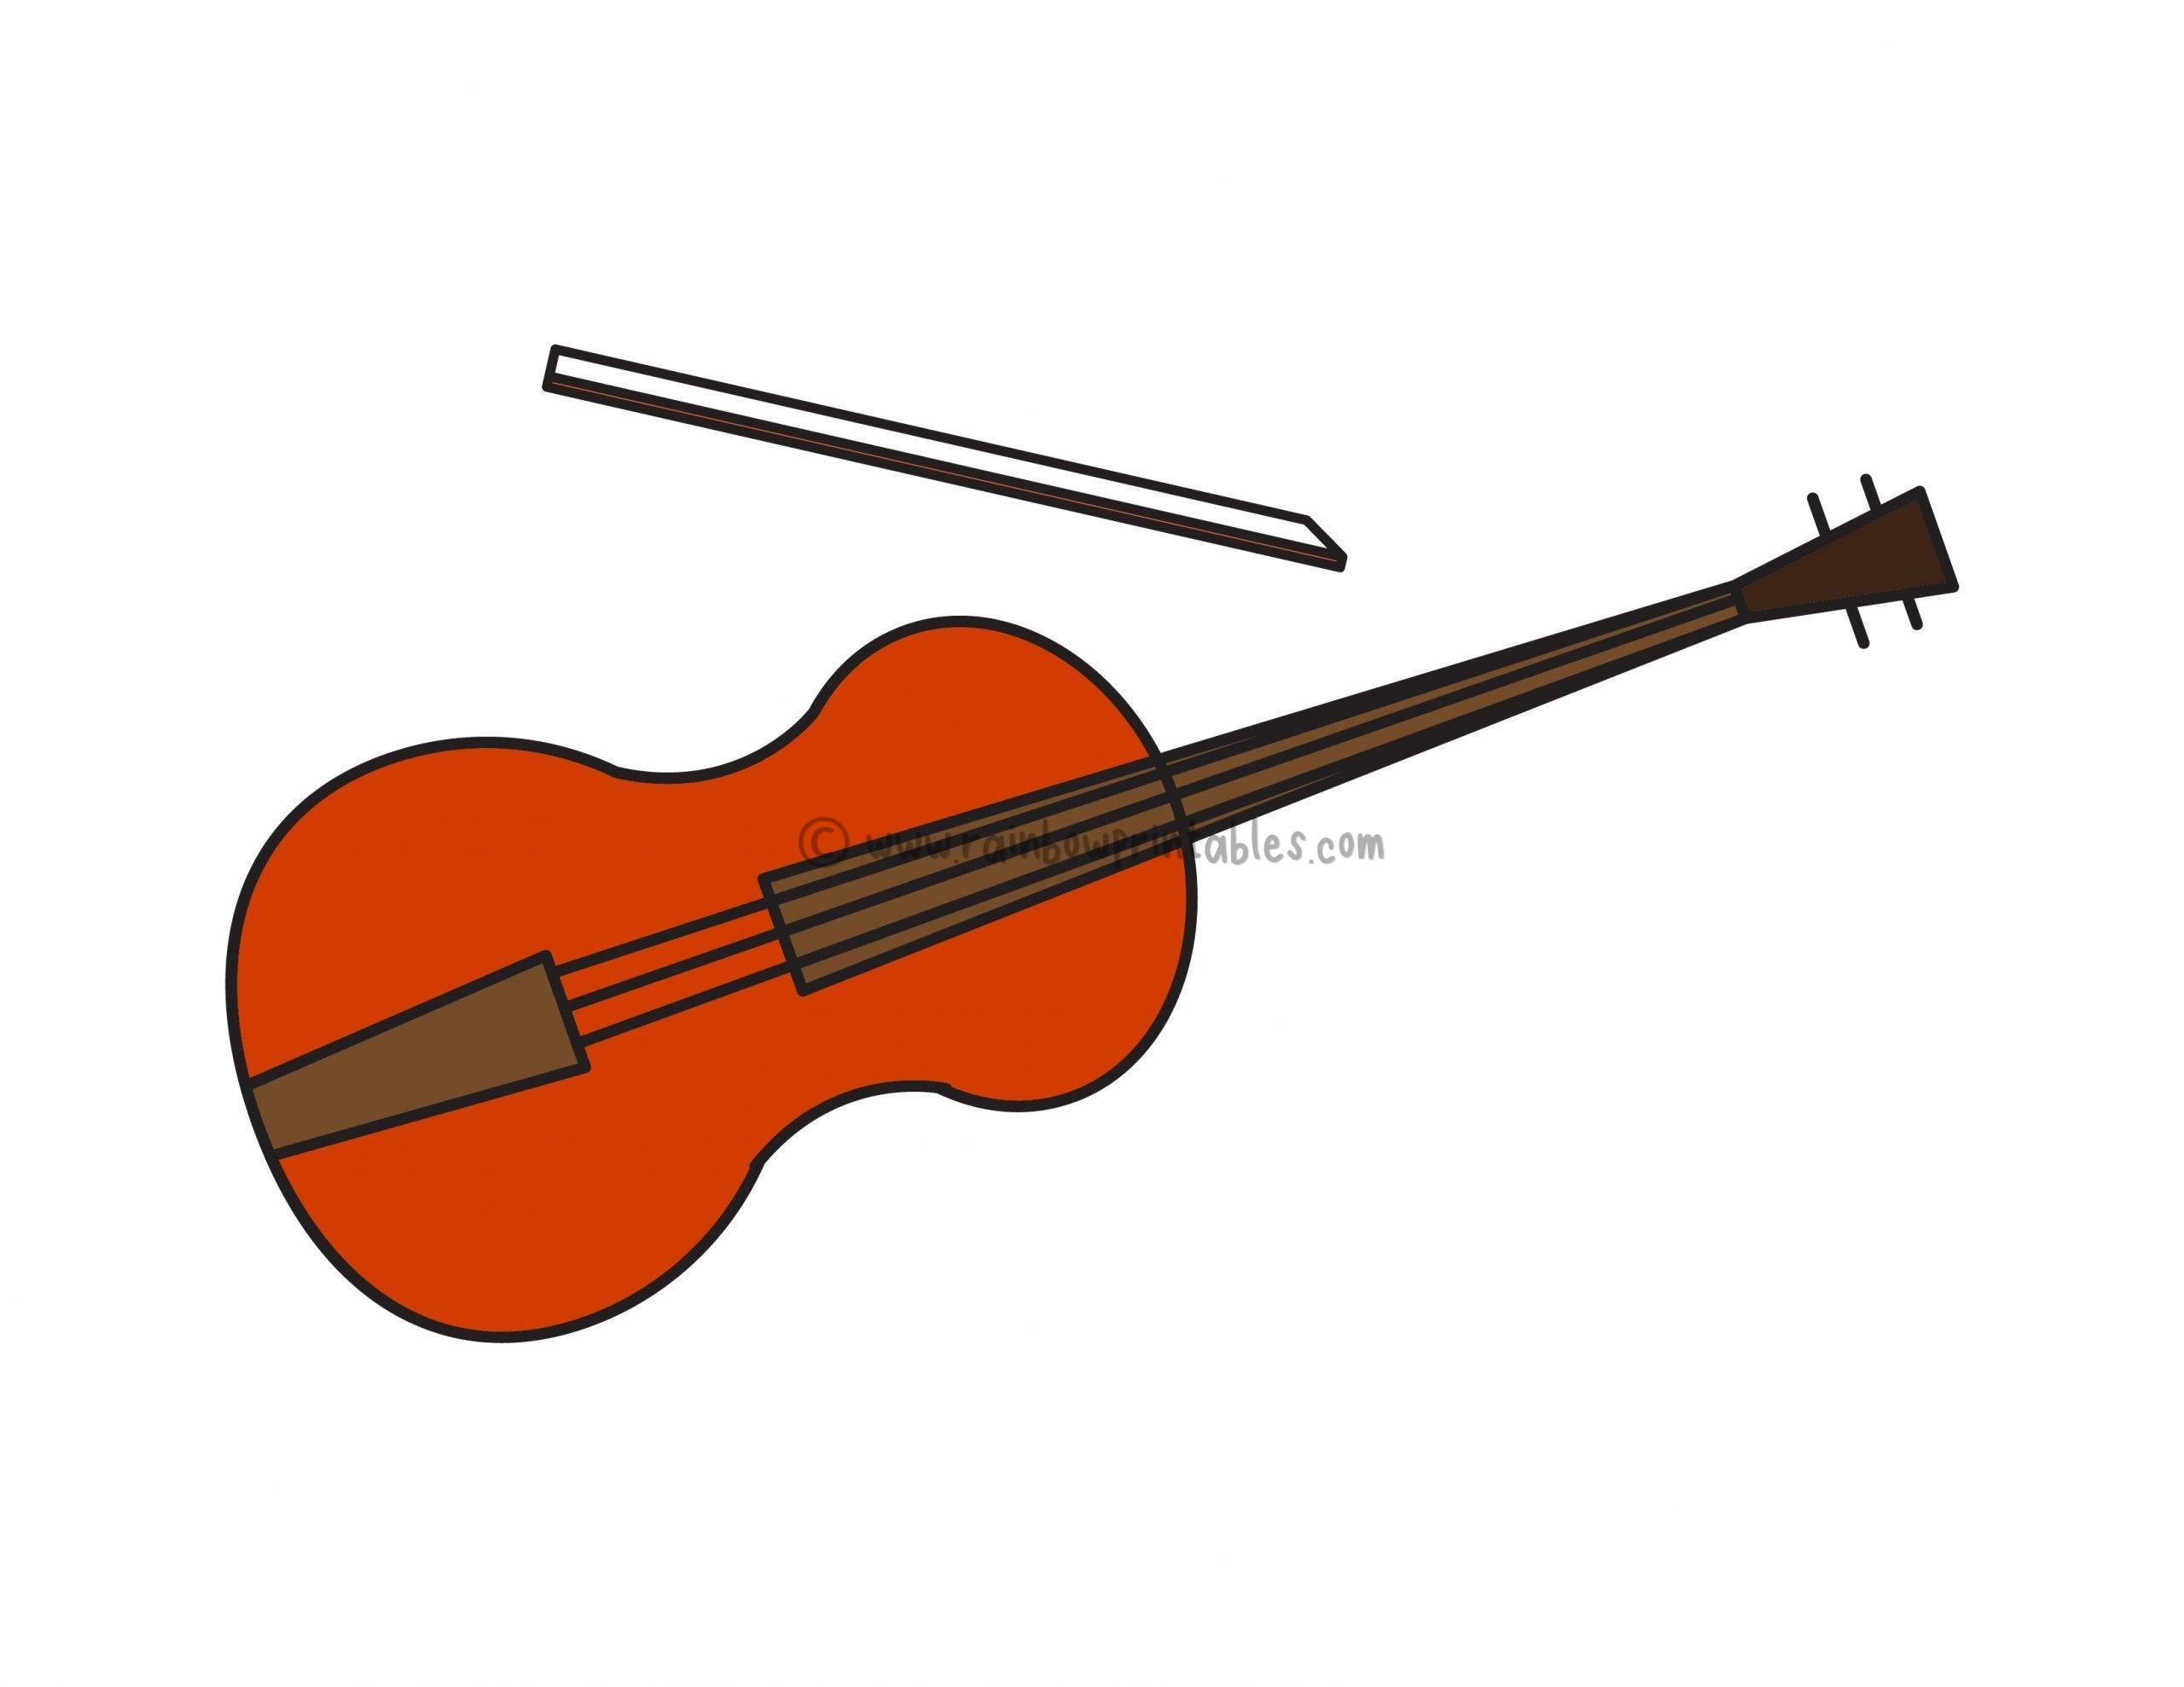 How To Draw a Violin / Fiddle (Musical Instrument) – Easy Peasy For Kids